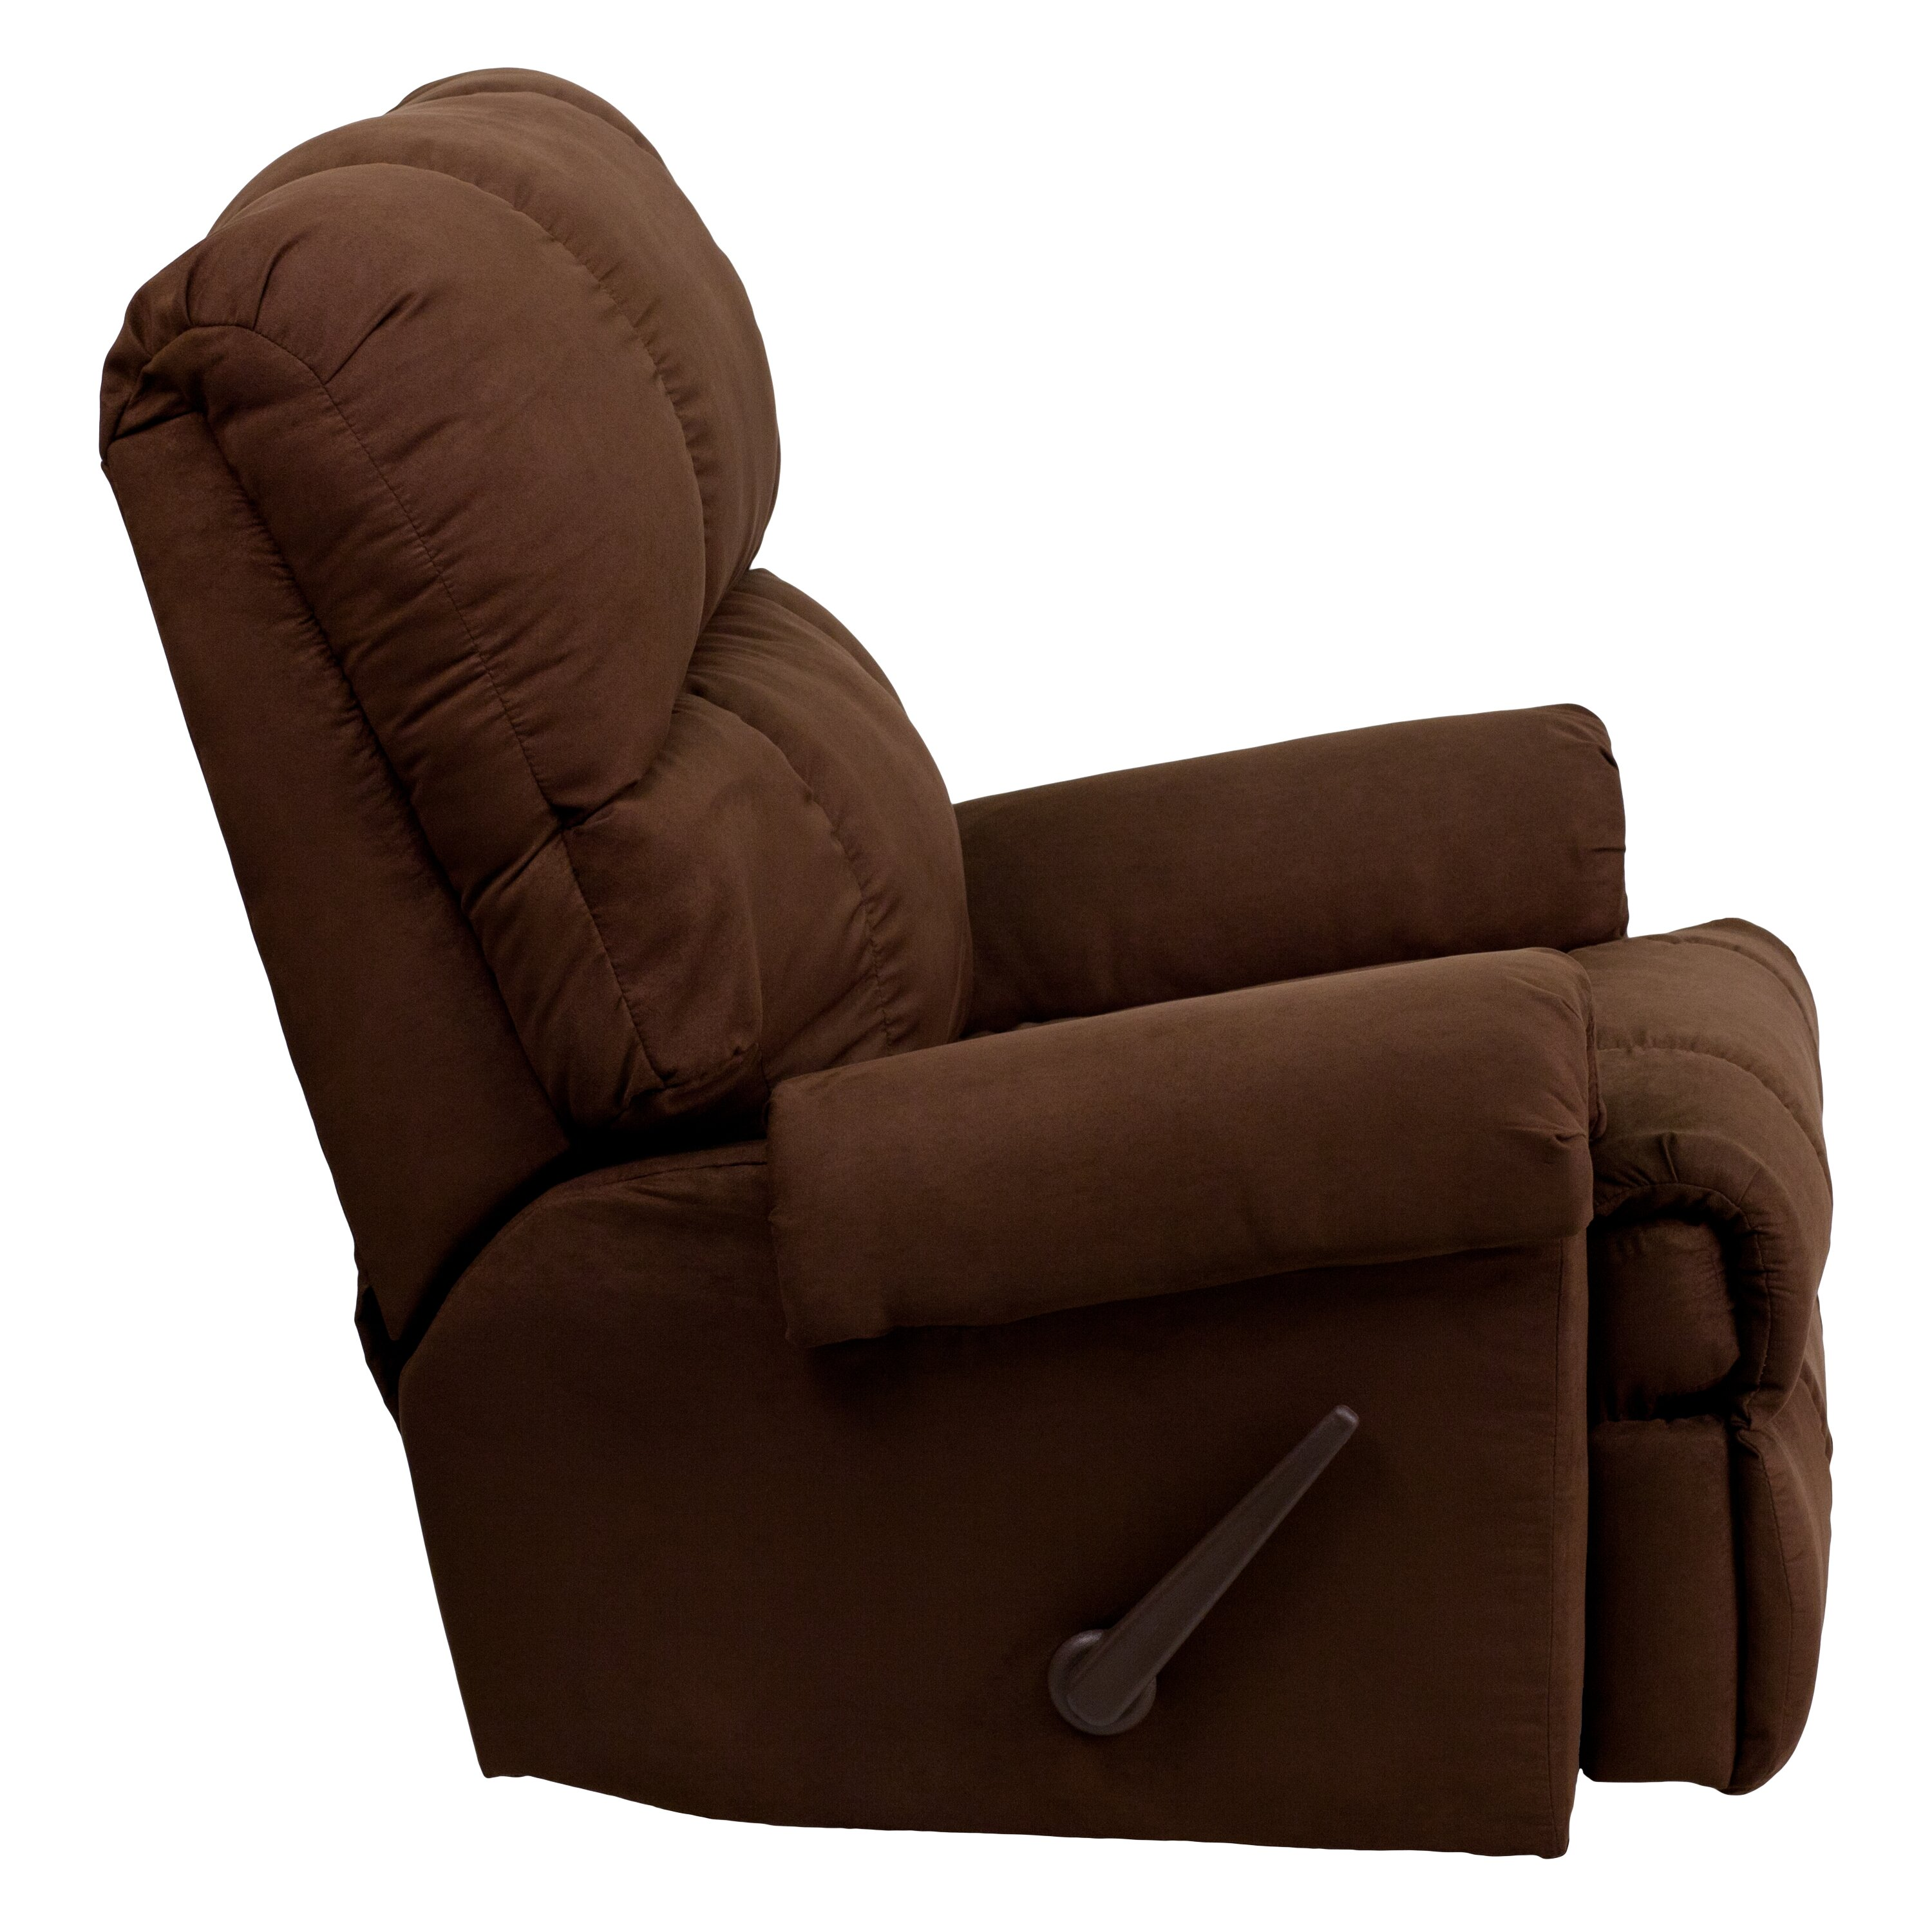 Cleaning Suede Furniture. Cleaning Suede Furniture   Top Furnitures Reference for Home